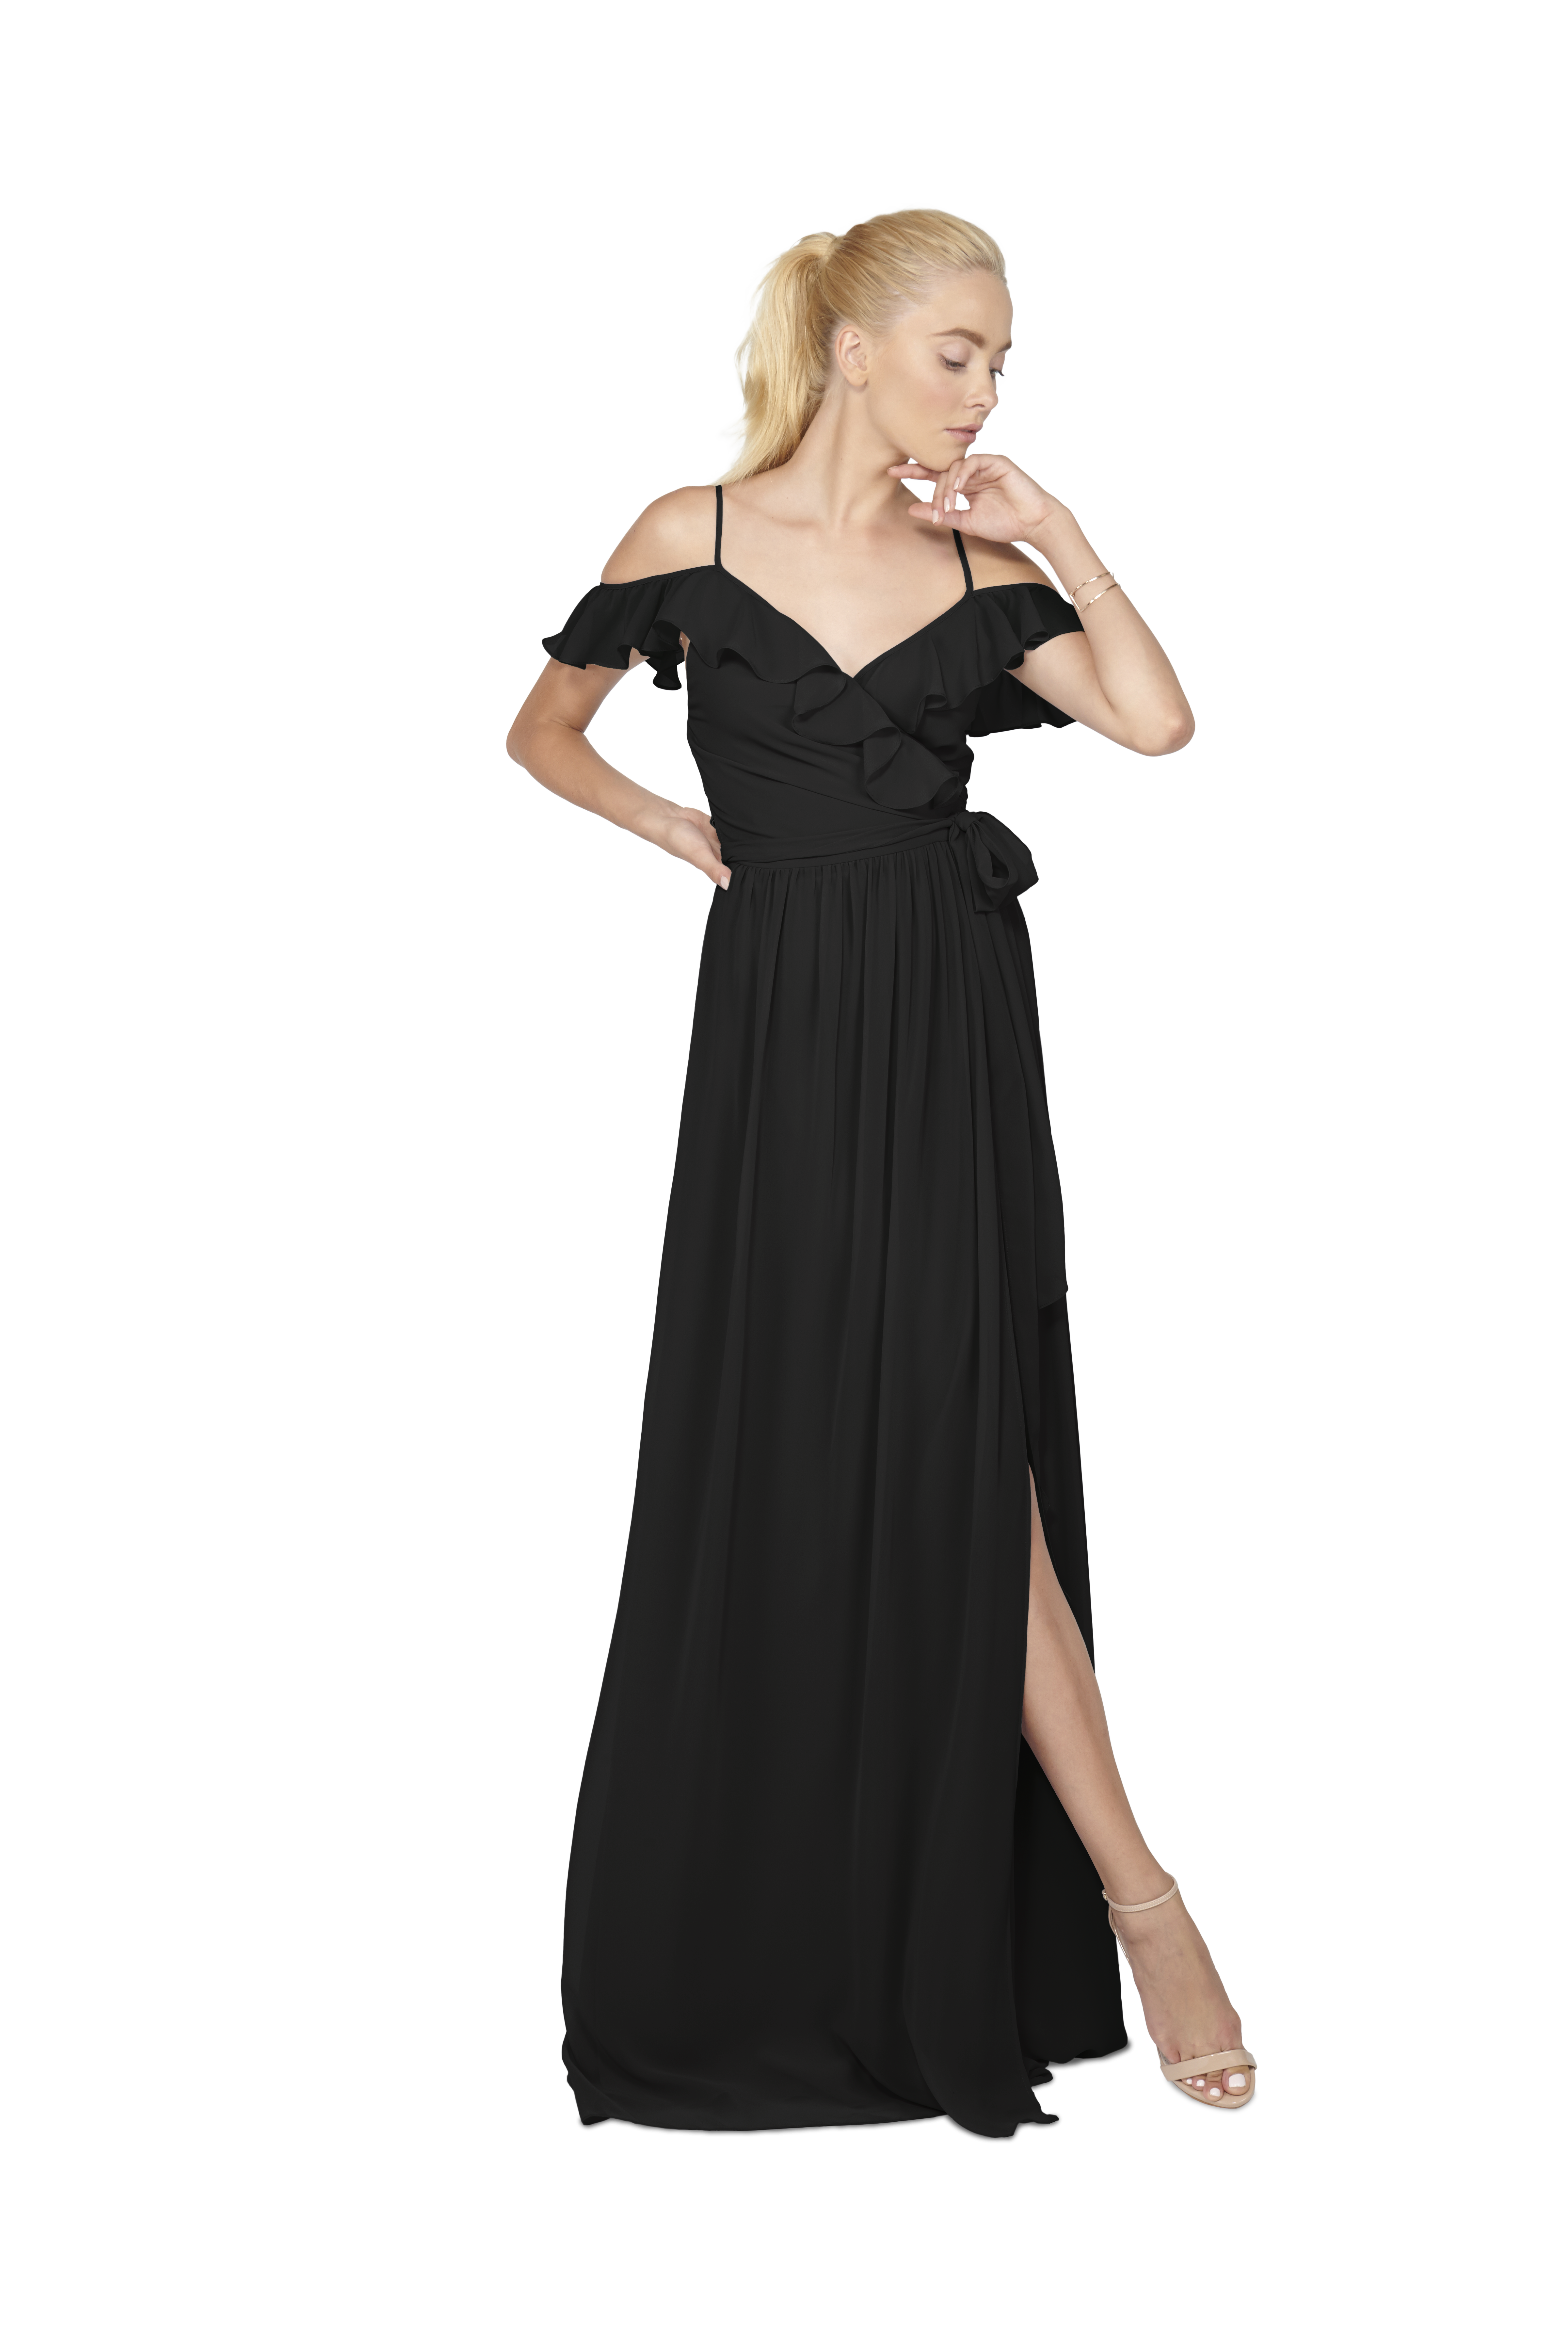 Chiffon wrap gown with off the shoulder ruffle strap. Full skirt that can  be wrapped to tie on the side or in the back. 24c9c47754e6